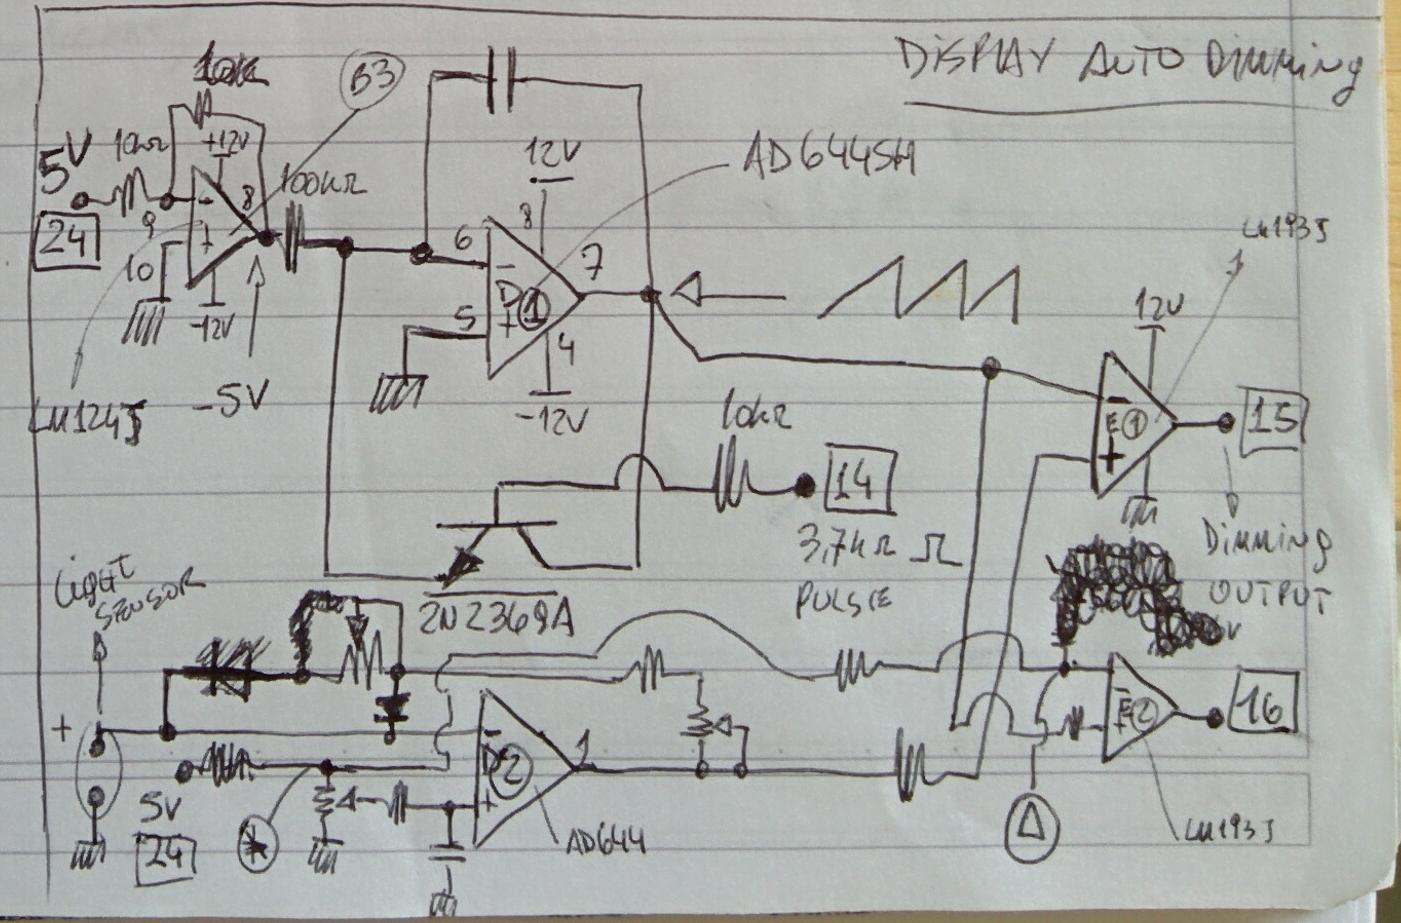 Lm324 Circuit Diagram As Well As Lm324 Parator Circuit